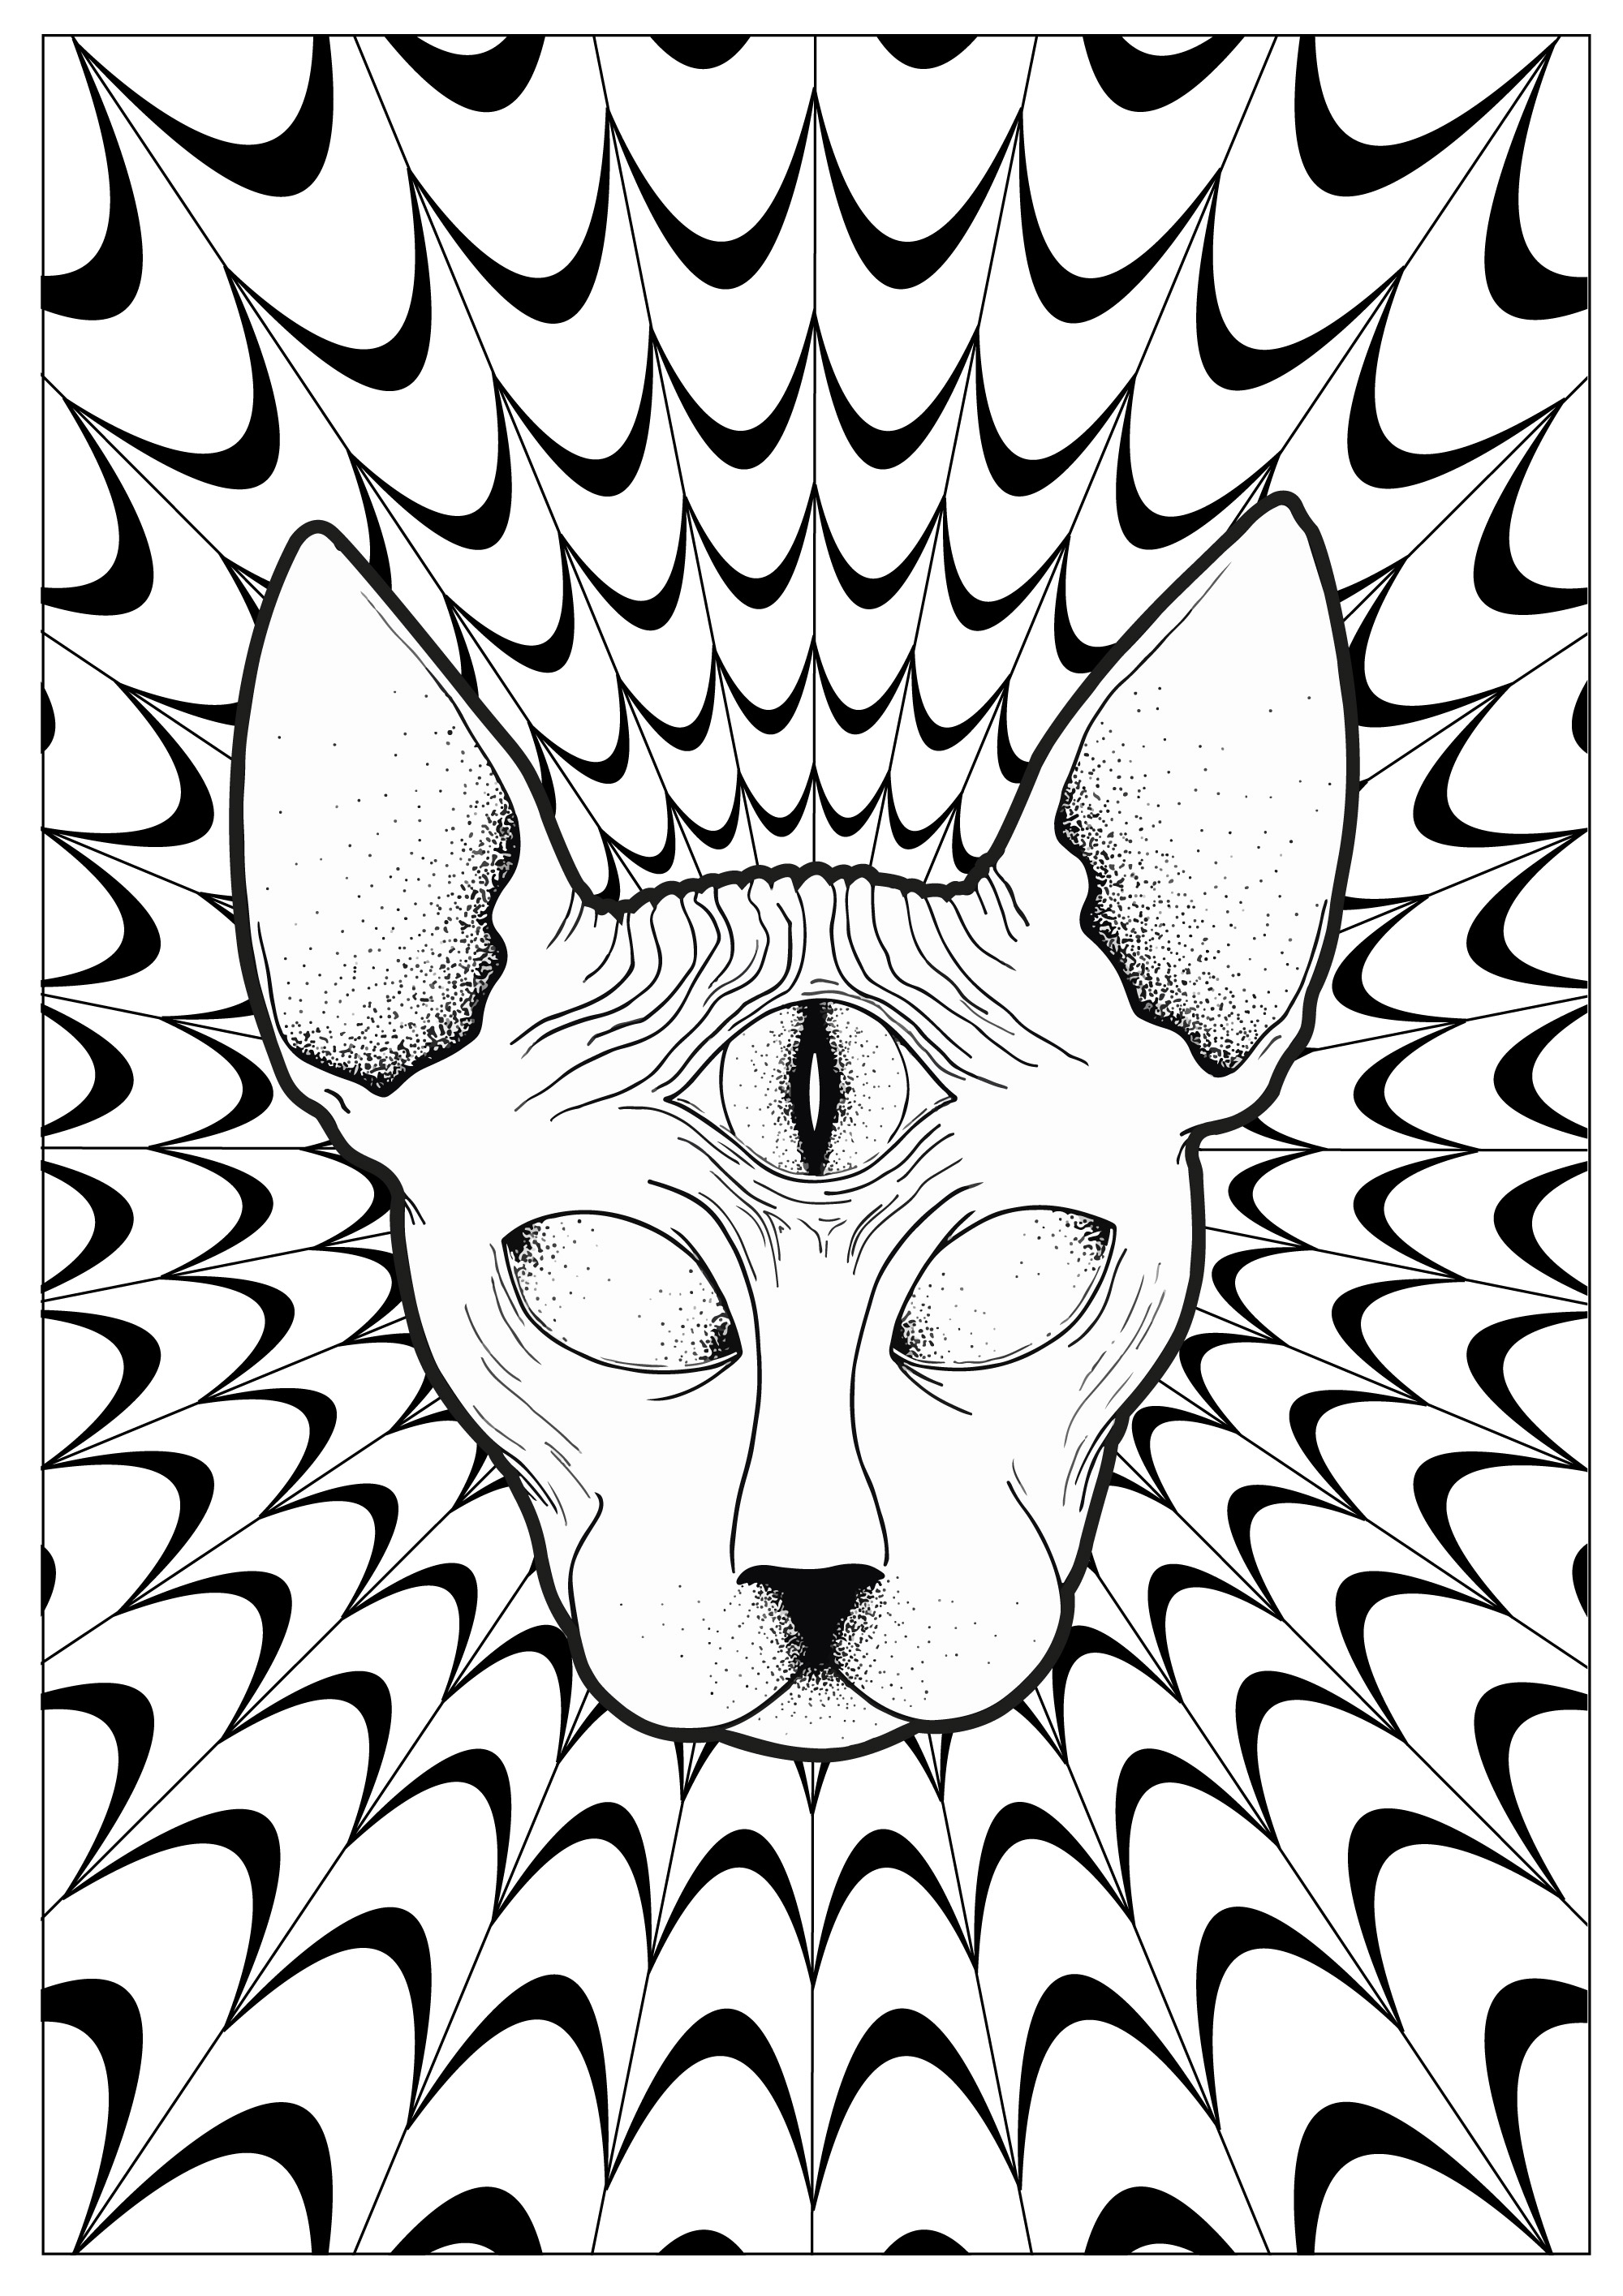 Psychedelic Coloring Pages For Adults Justcolor Coloring Pages